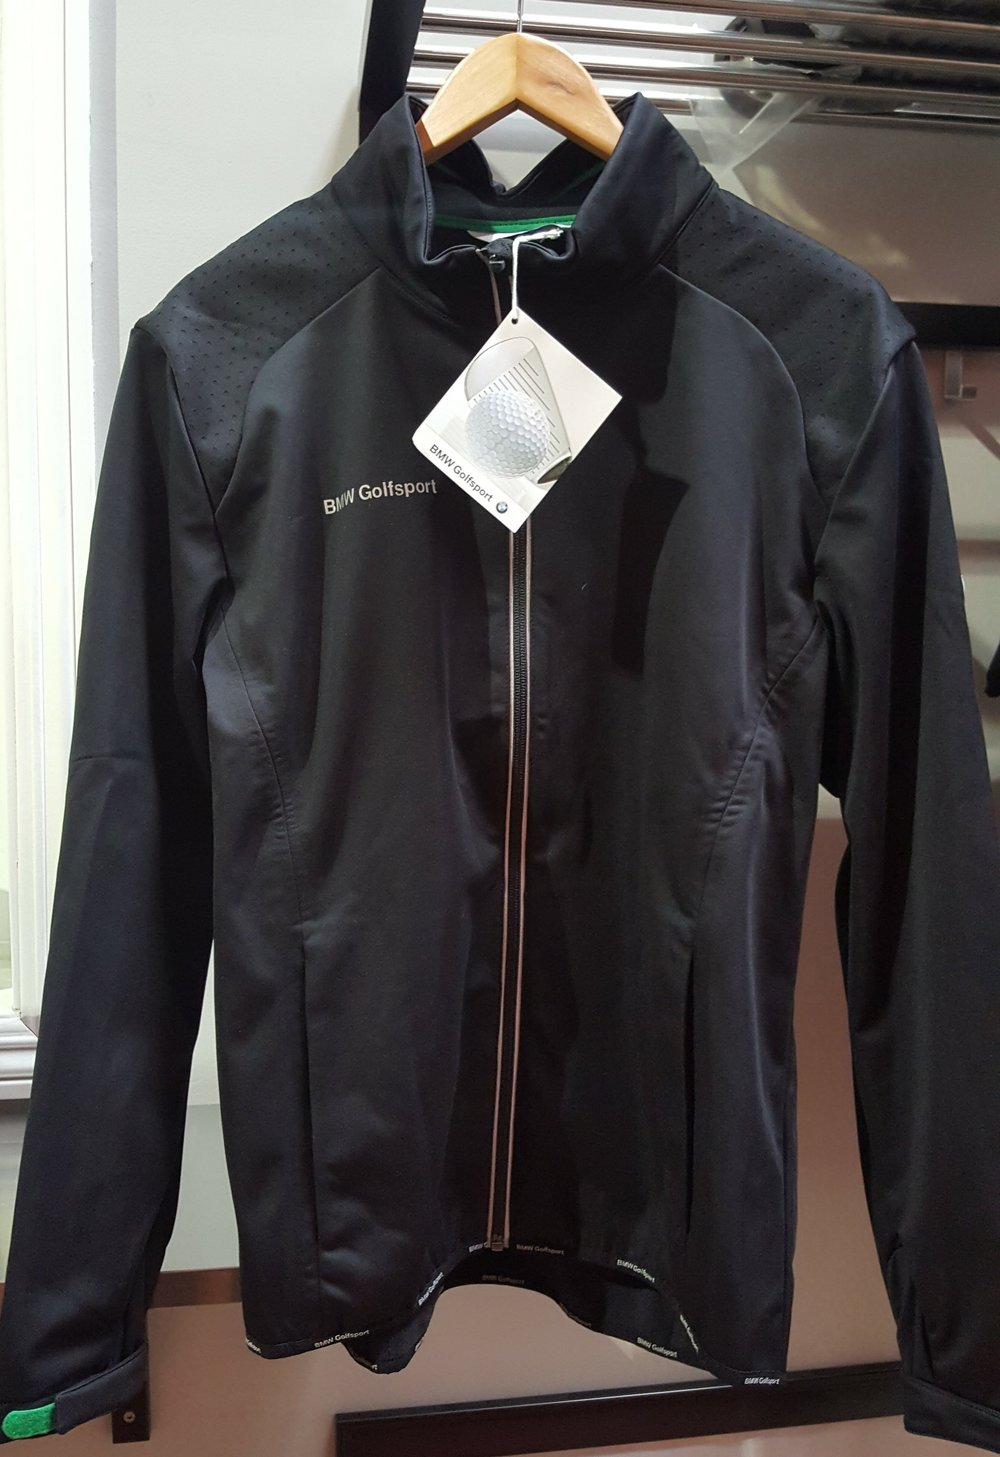 bmw golfsport softshell men's jacket XL Donated by  BMW of Fremont. 1 winner. Estimated value: $120.